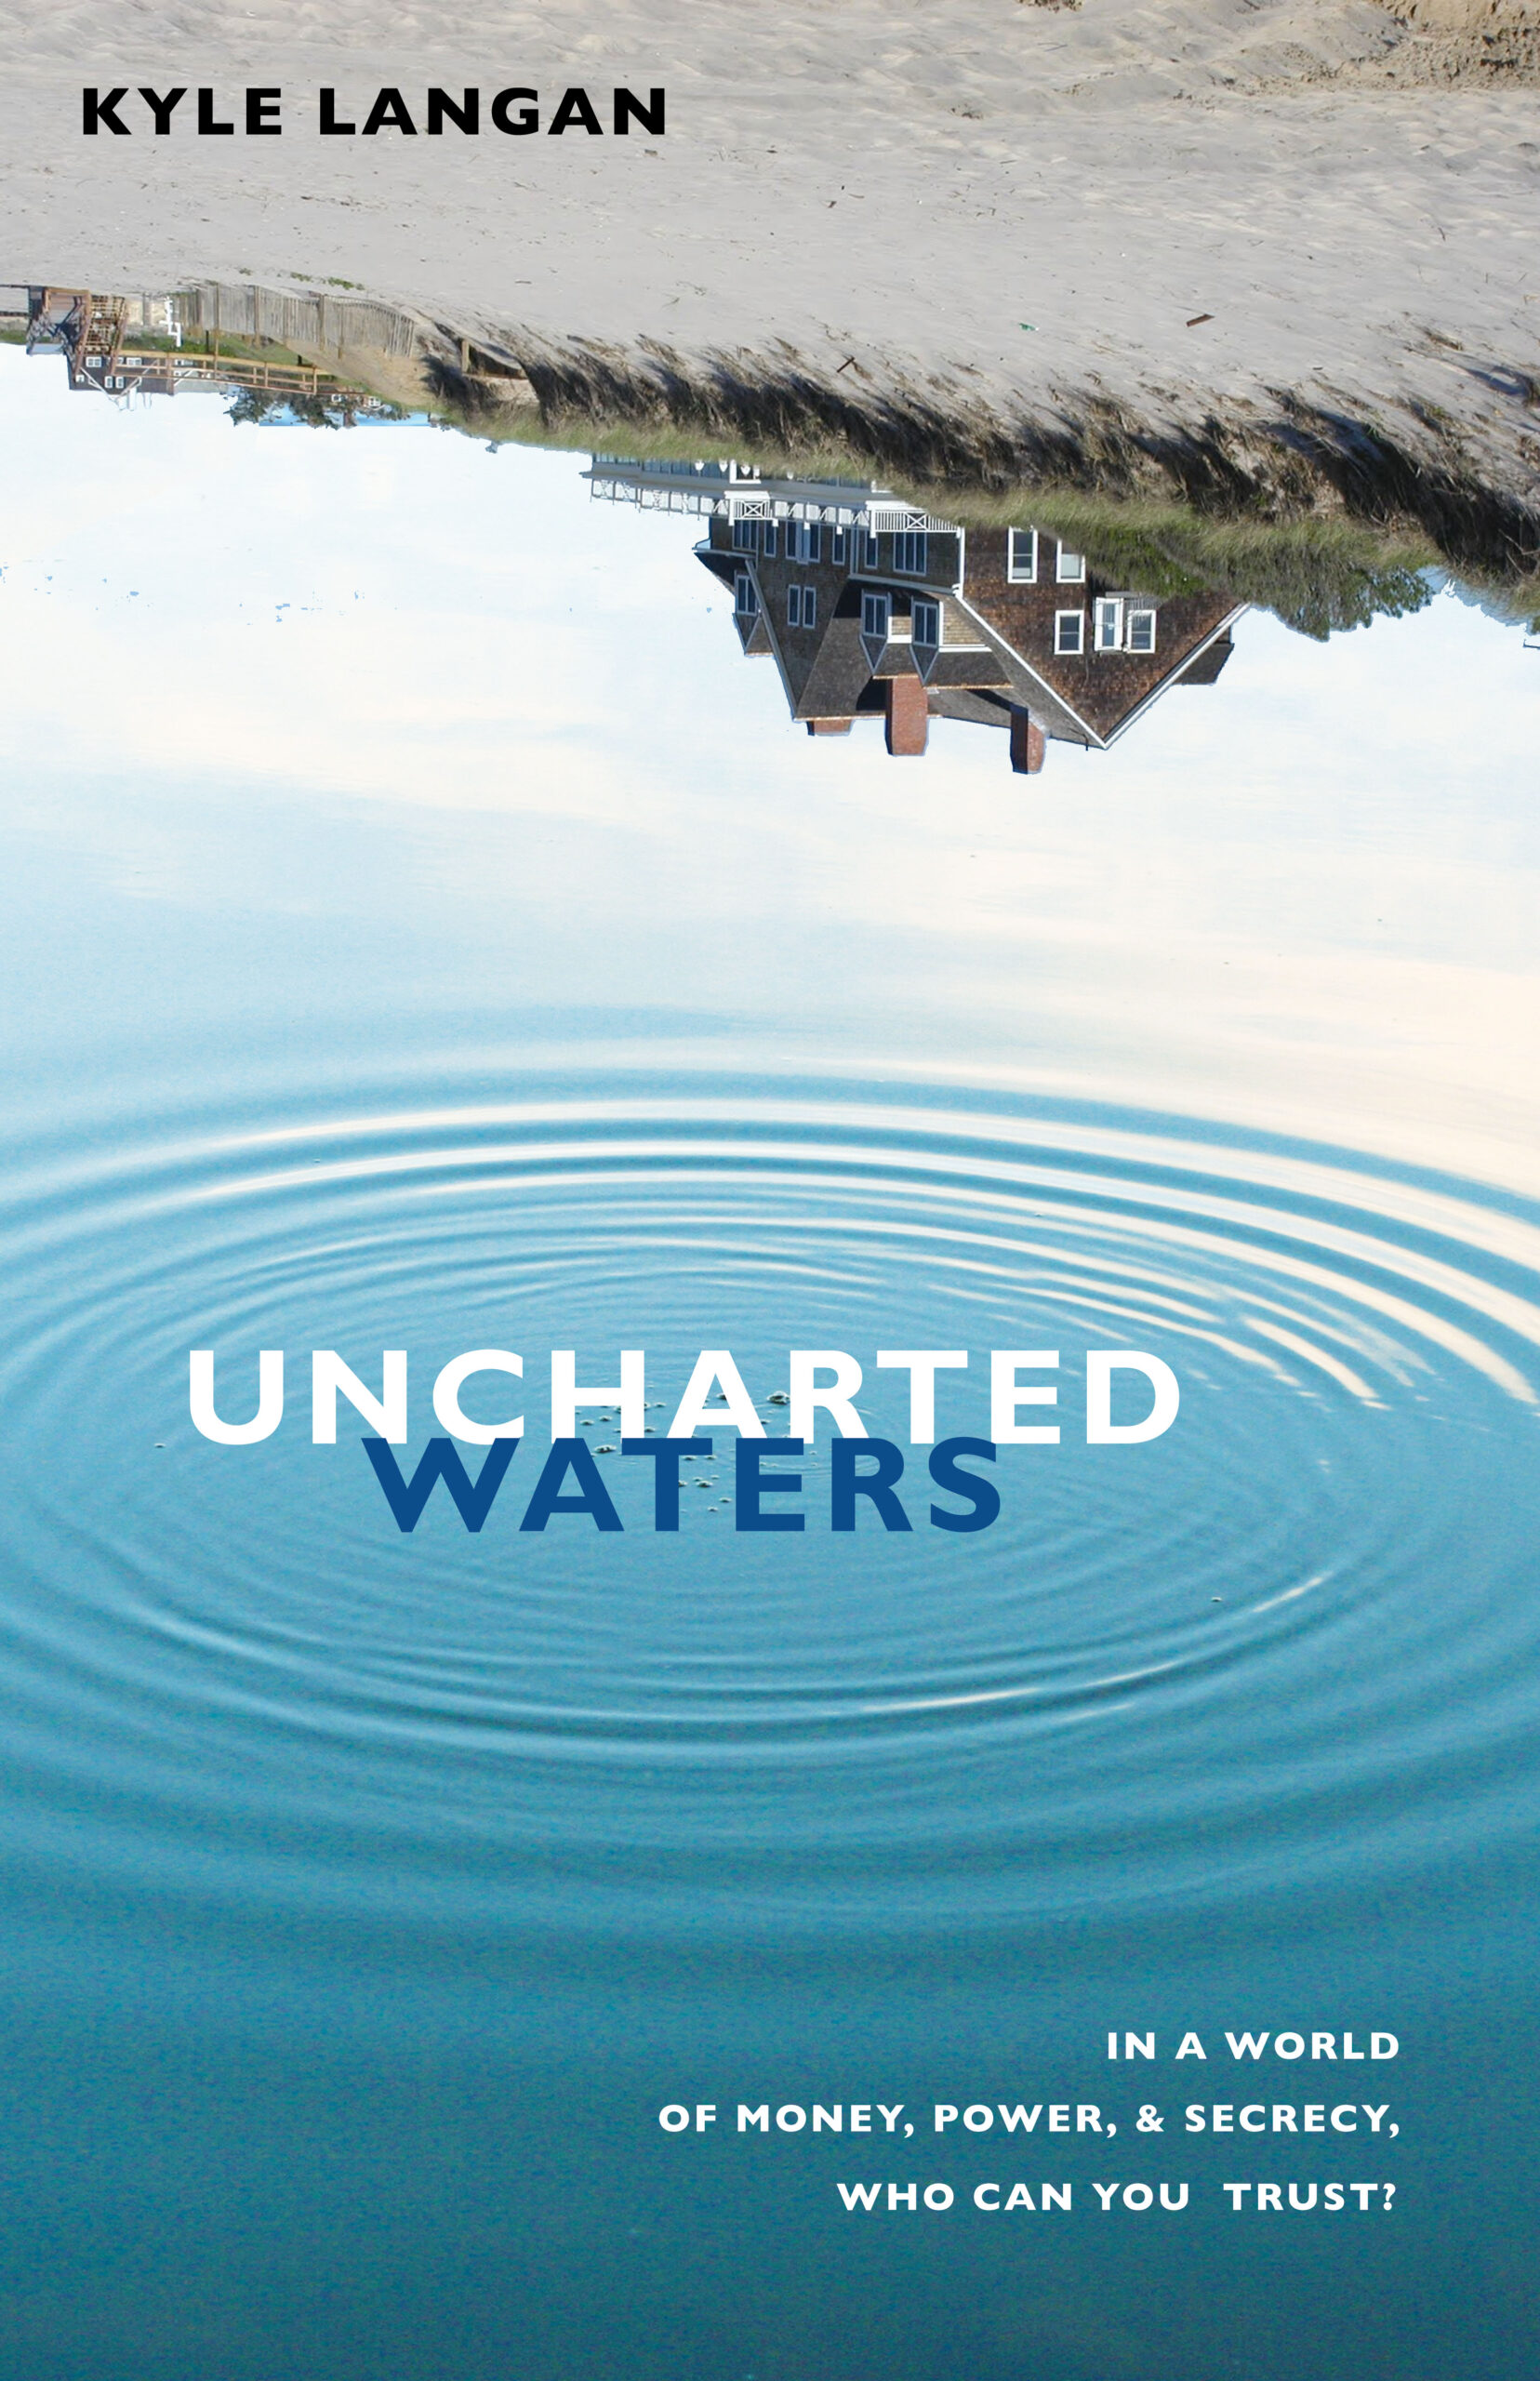 Uncharted Waters, by Kyle Langan, is a young adult novel set in the Hamptons that discusses coming-of-age themes, like friendship.